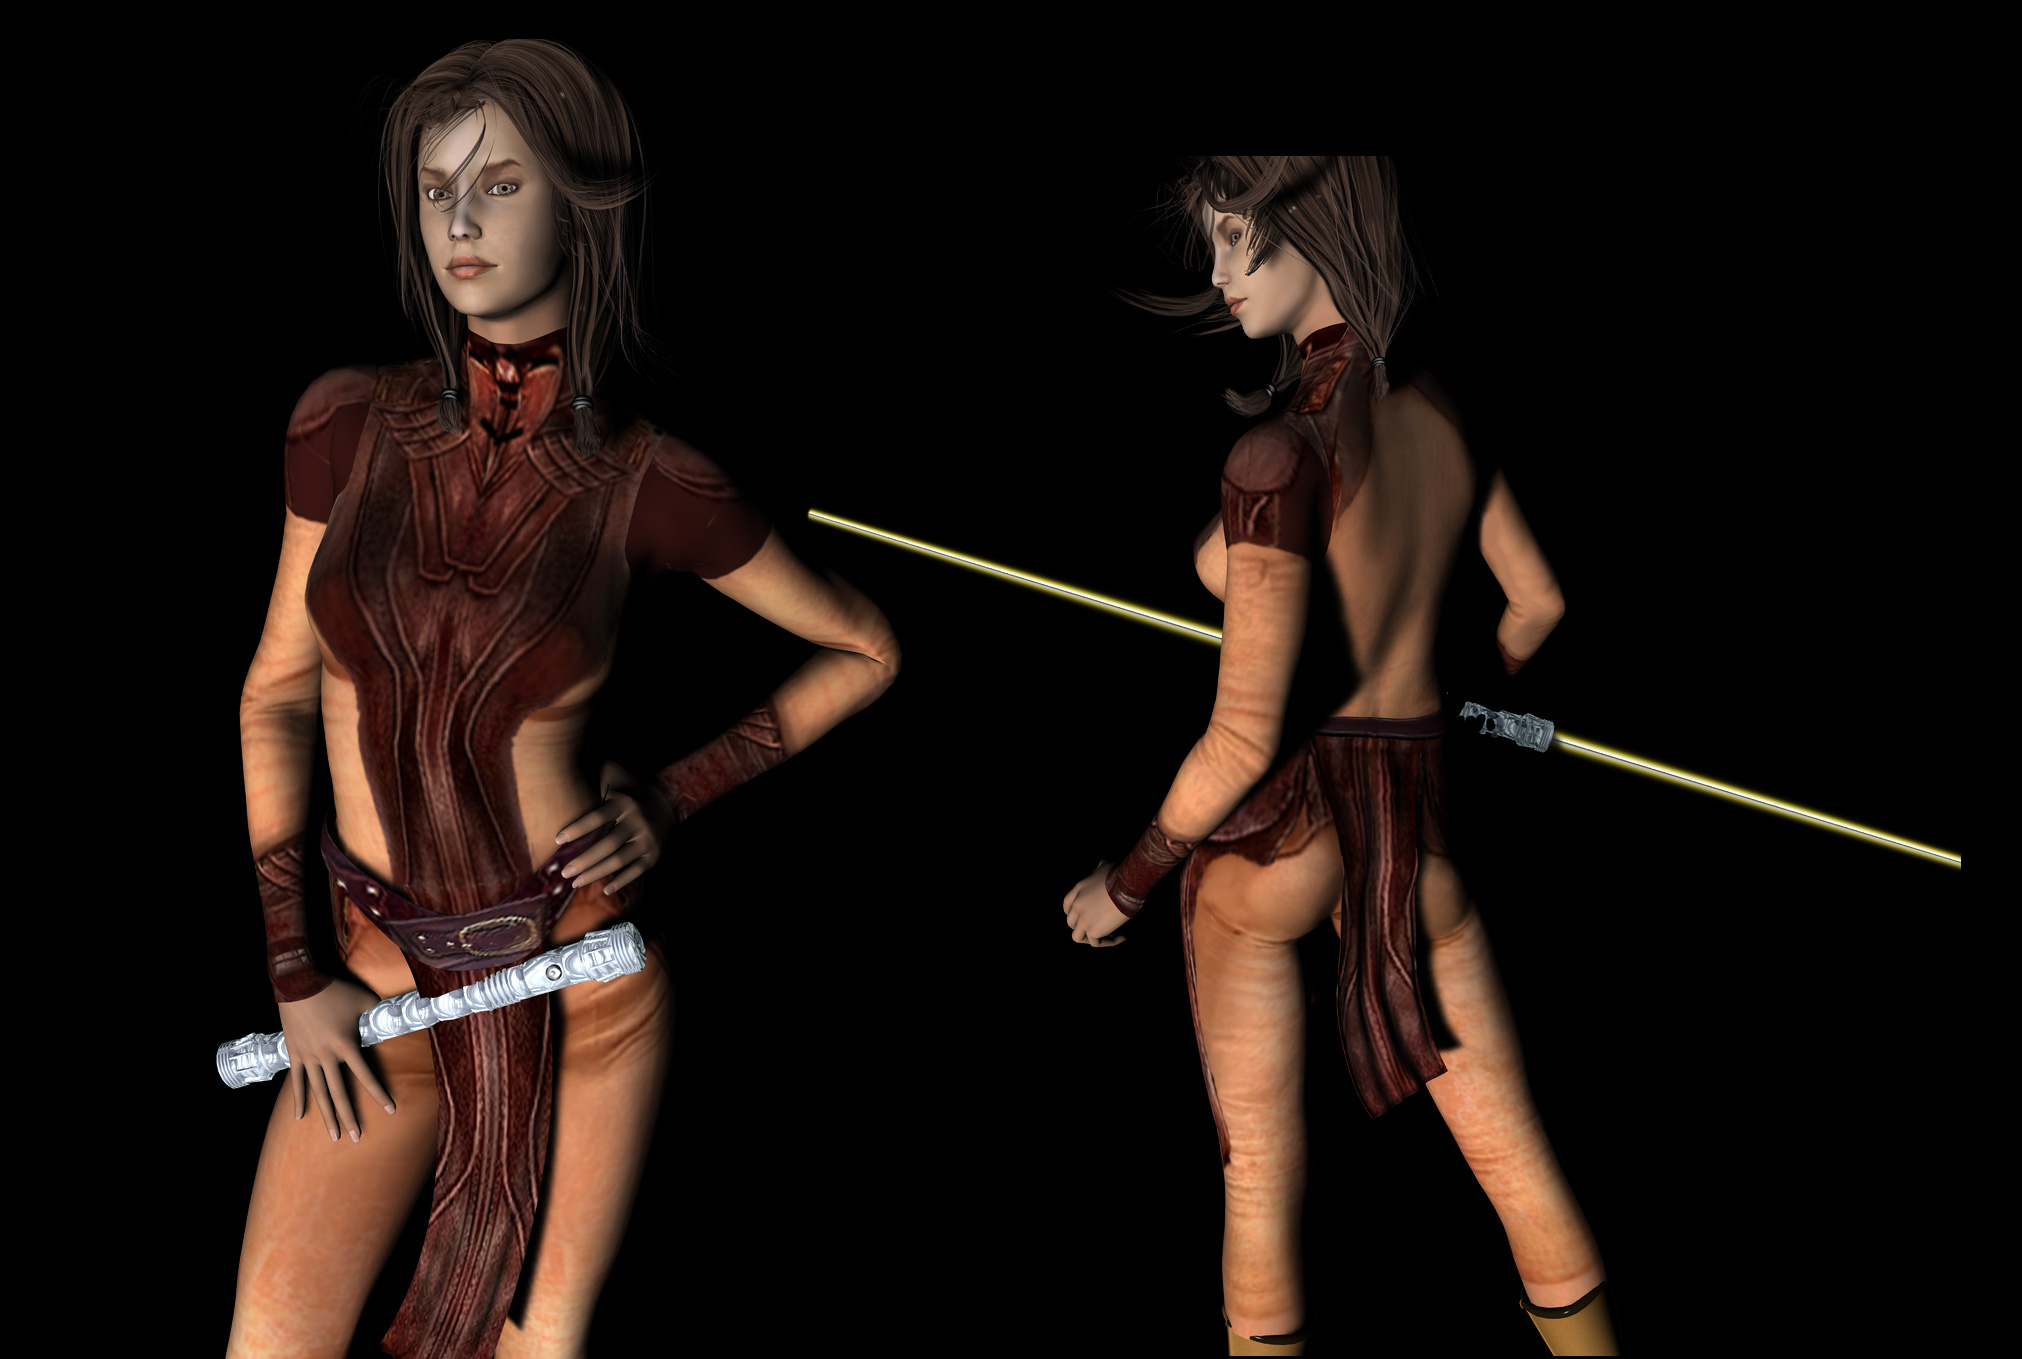 Star wars kotor bastila nude mod sex pictures